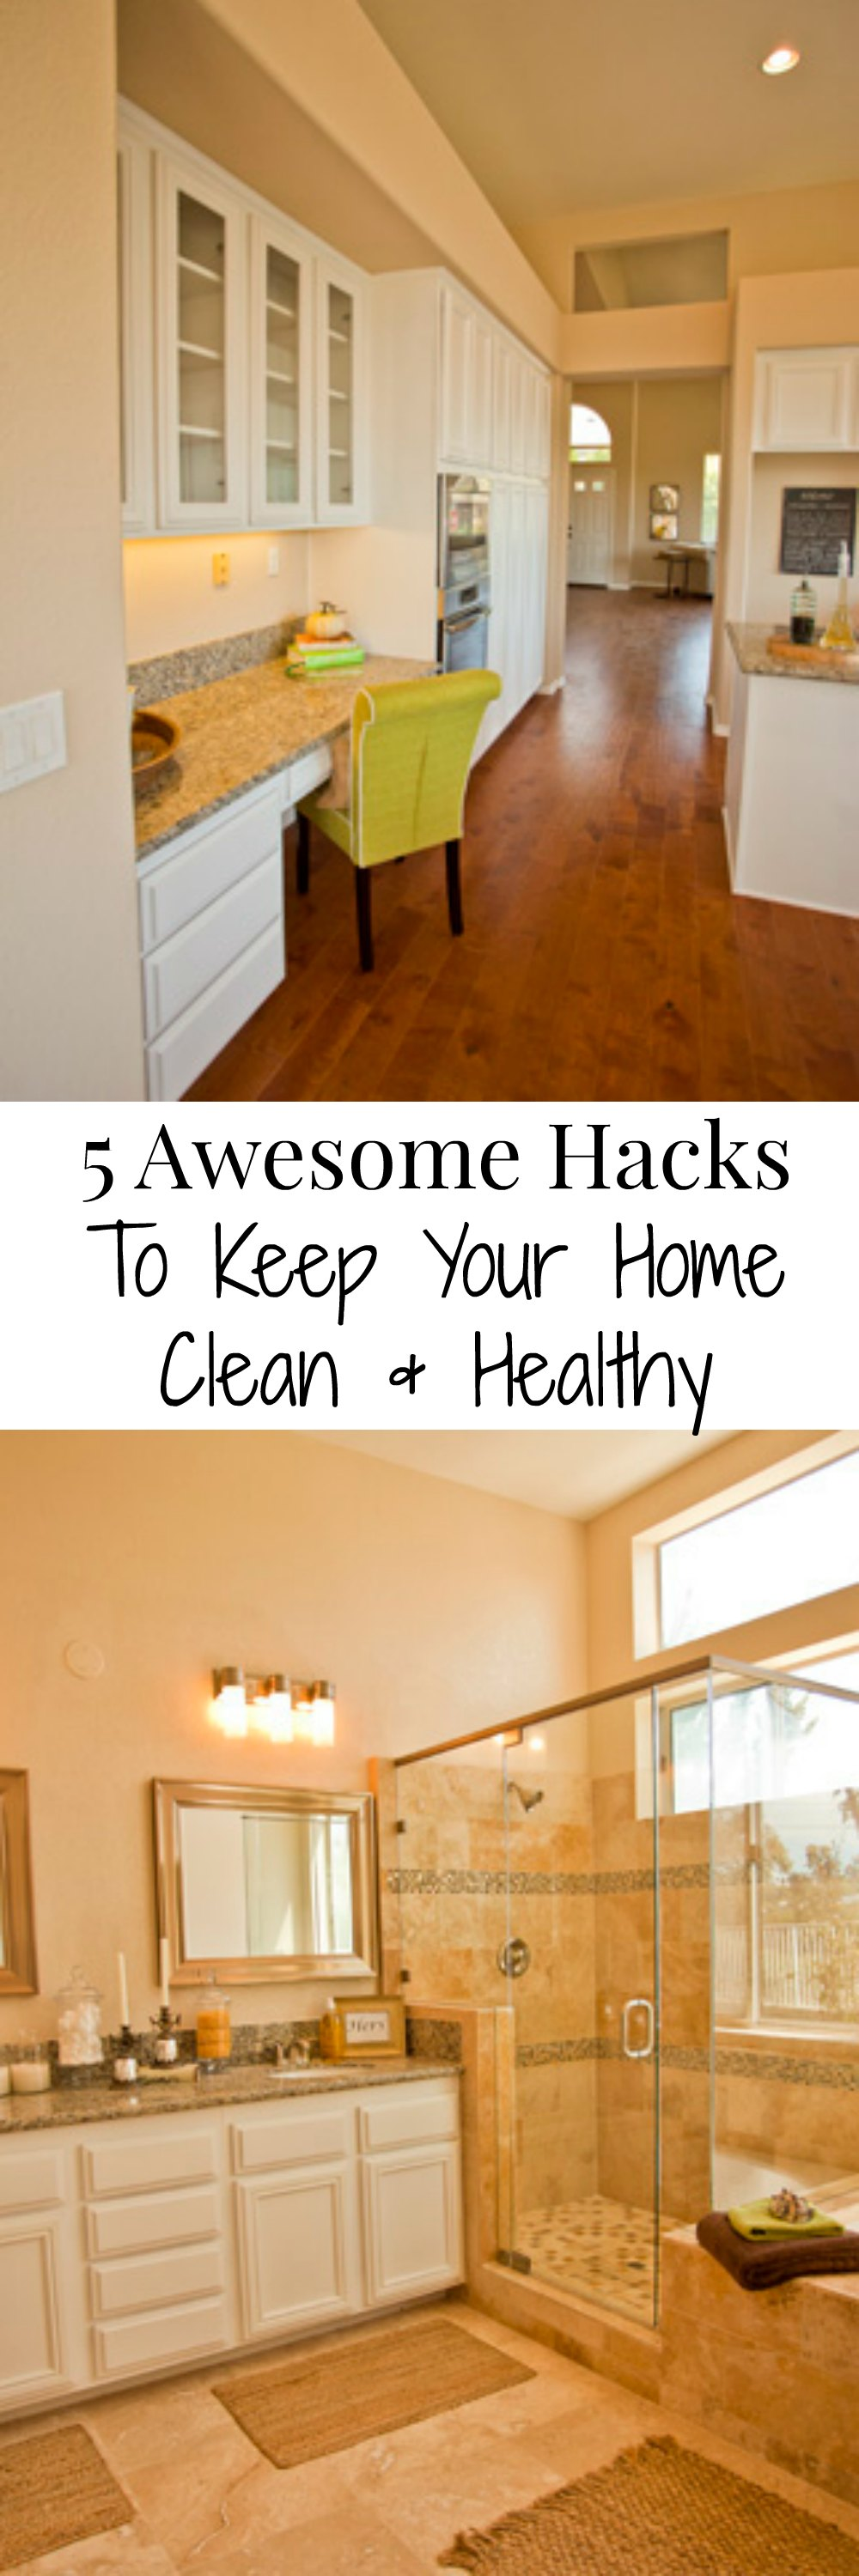 5 Awesome Hacks To Keep Your Home Clean & Healthy